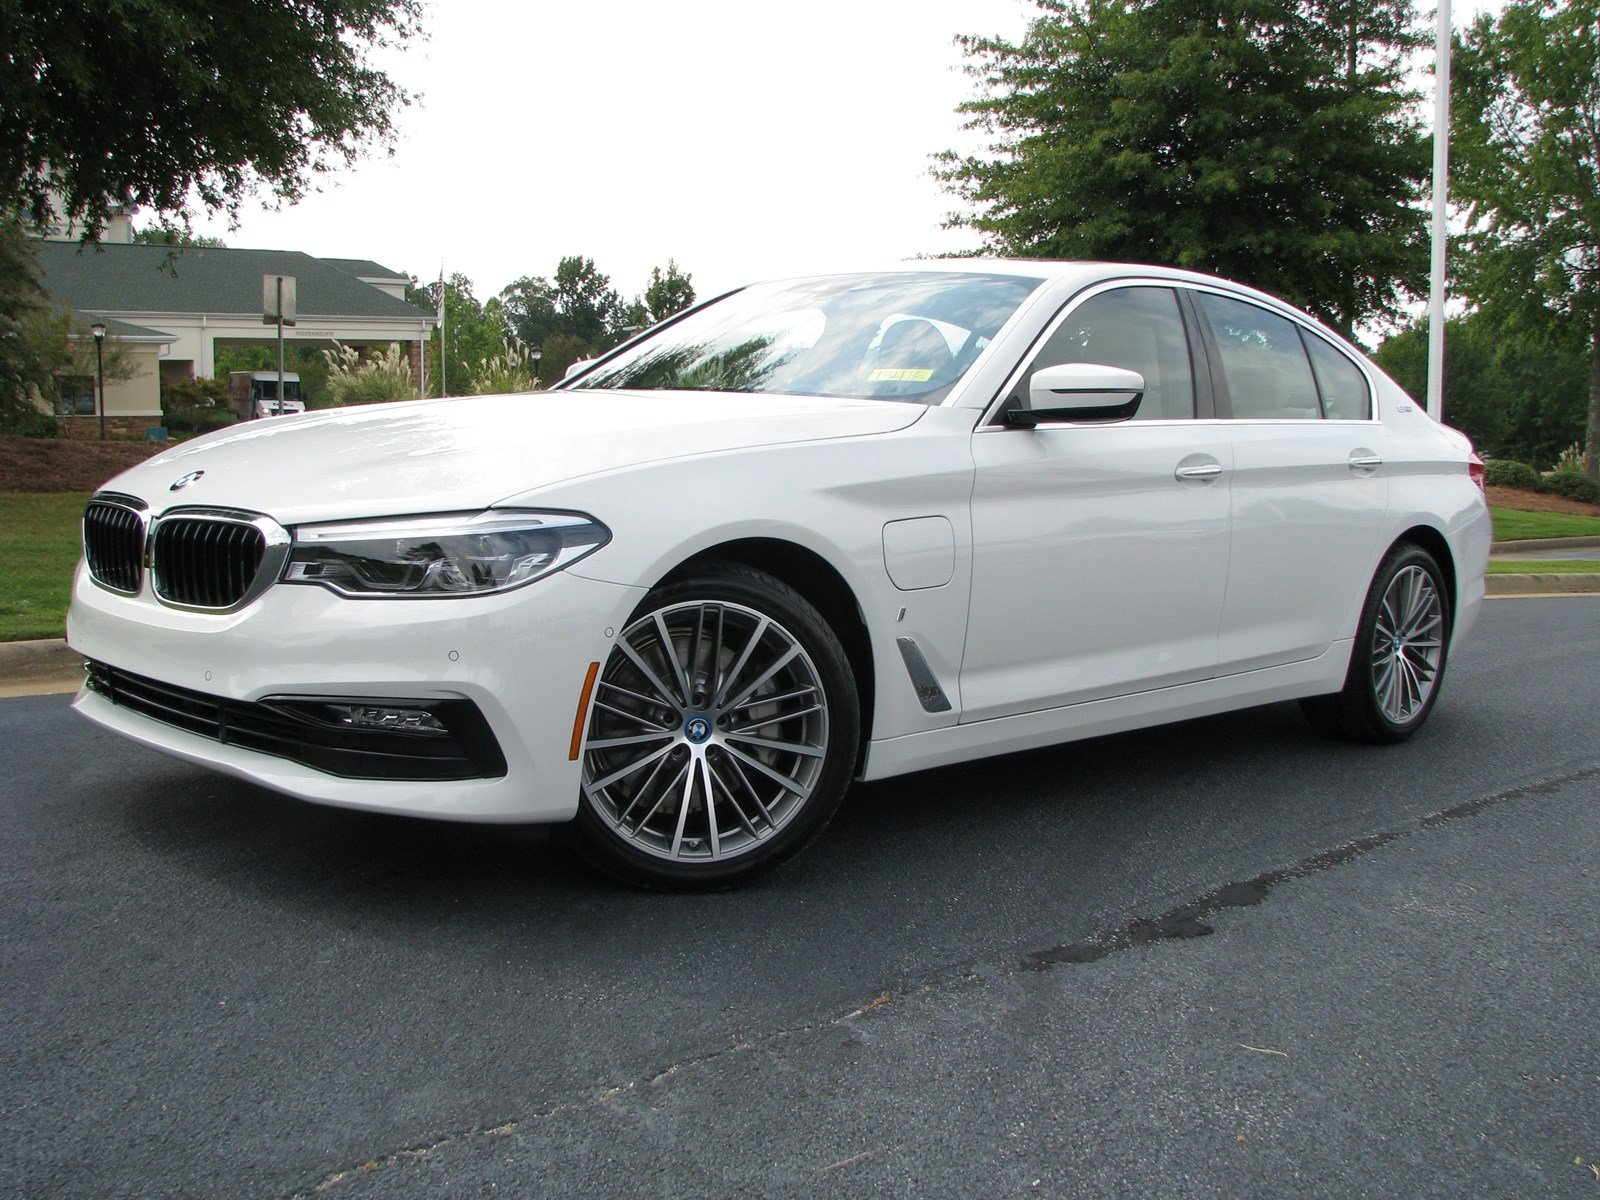 certified pre owned 2018 bmw 5 series 530e iperformance 4dr car in columbus 13418 butler auto. Black Bedroom Furniture Sets. Home Design Ideas